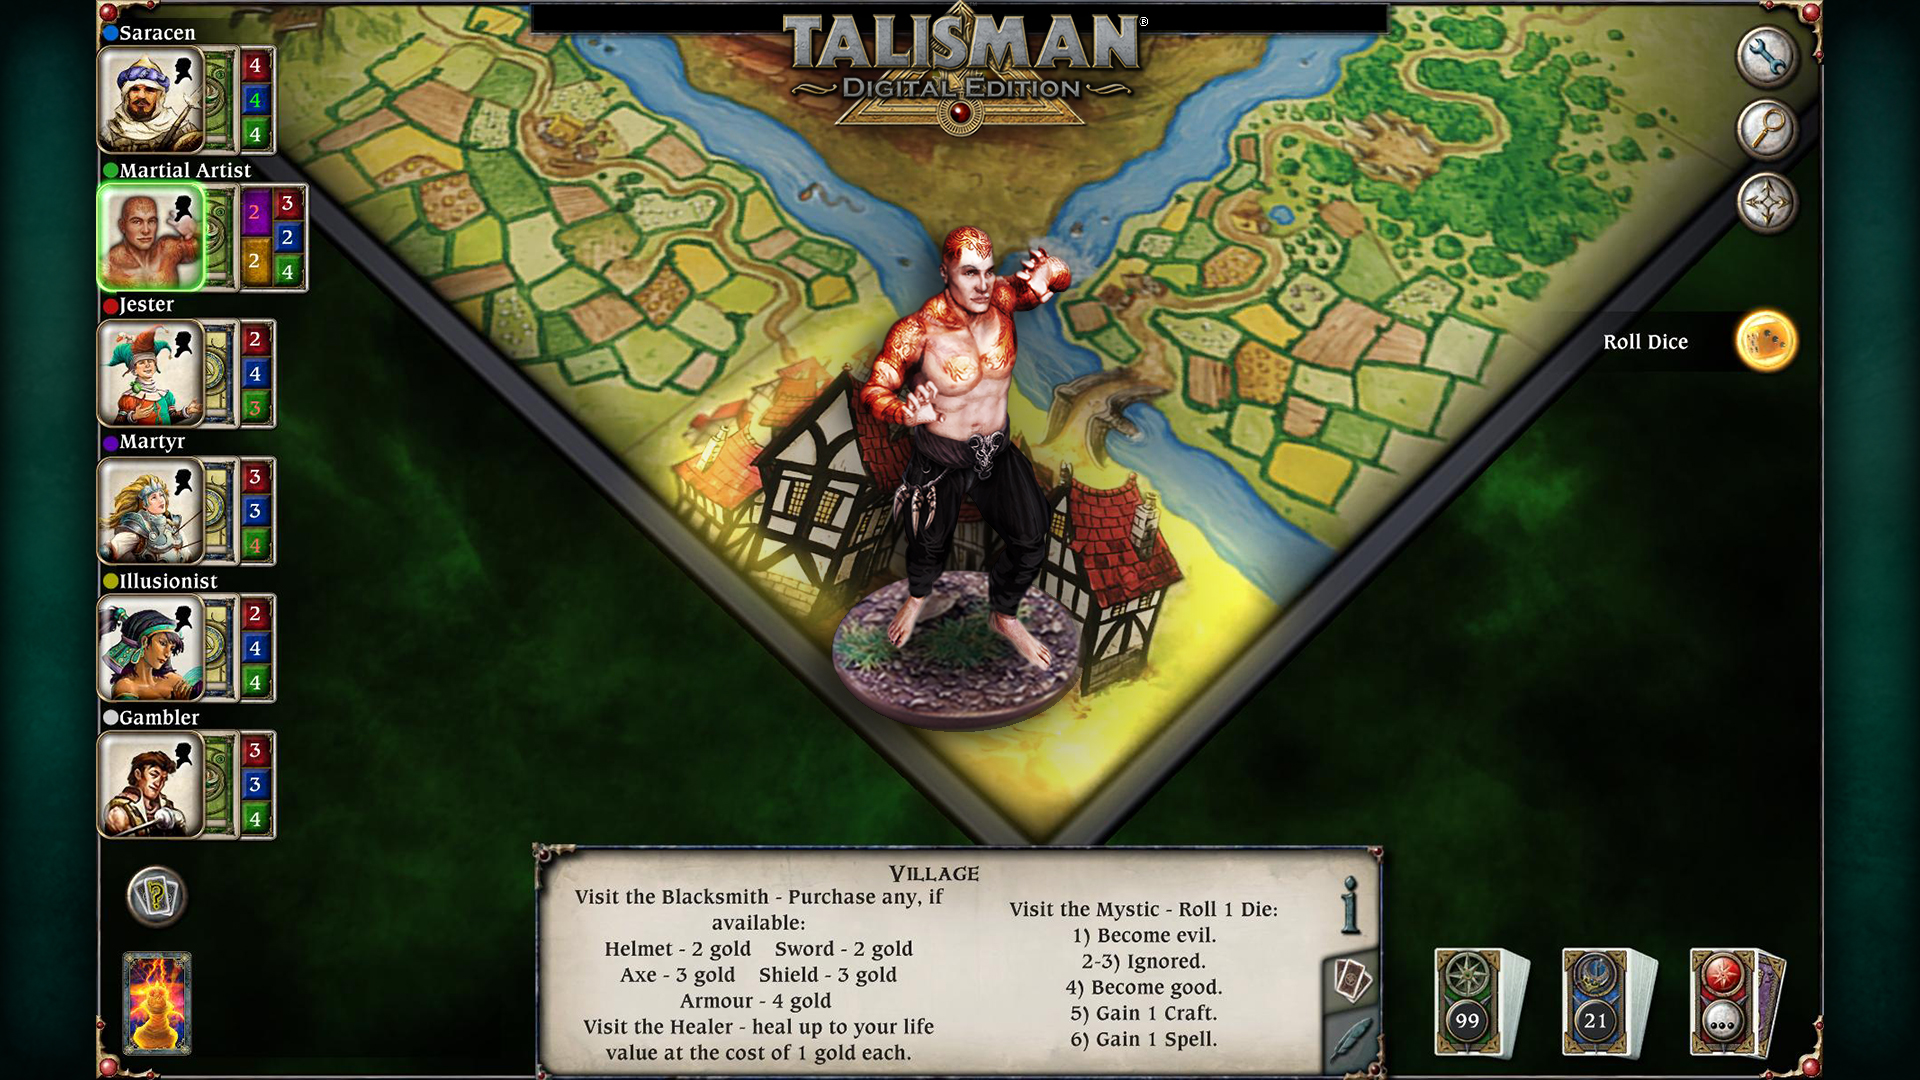 talisman-characters-screenshots-all-languagesnew-03